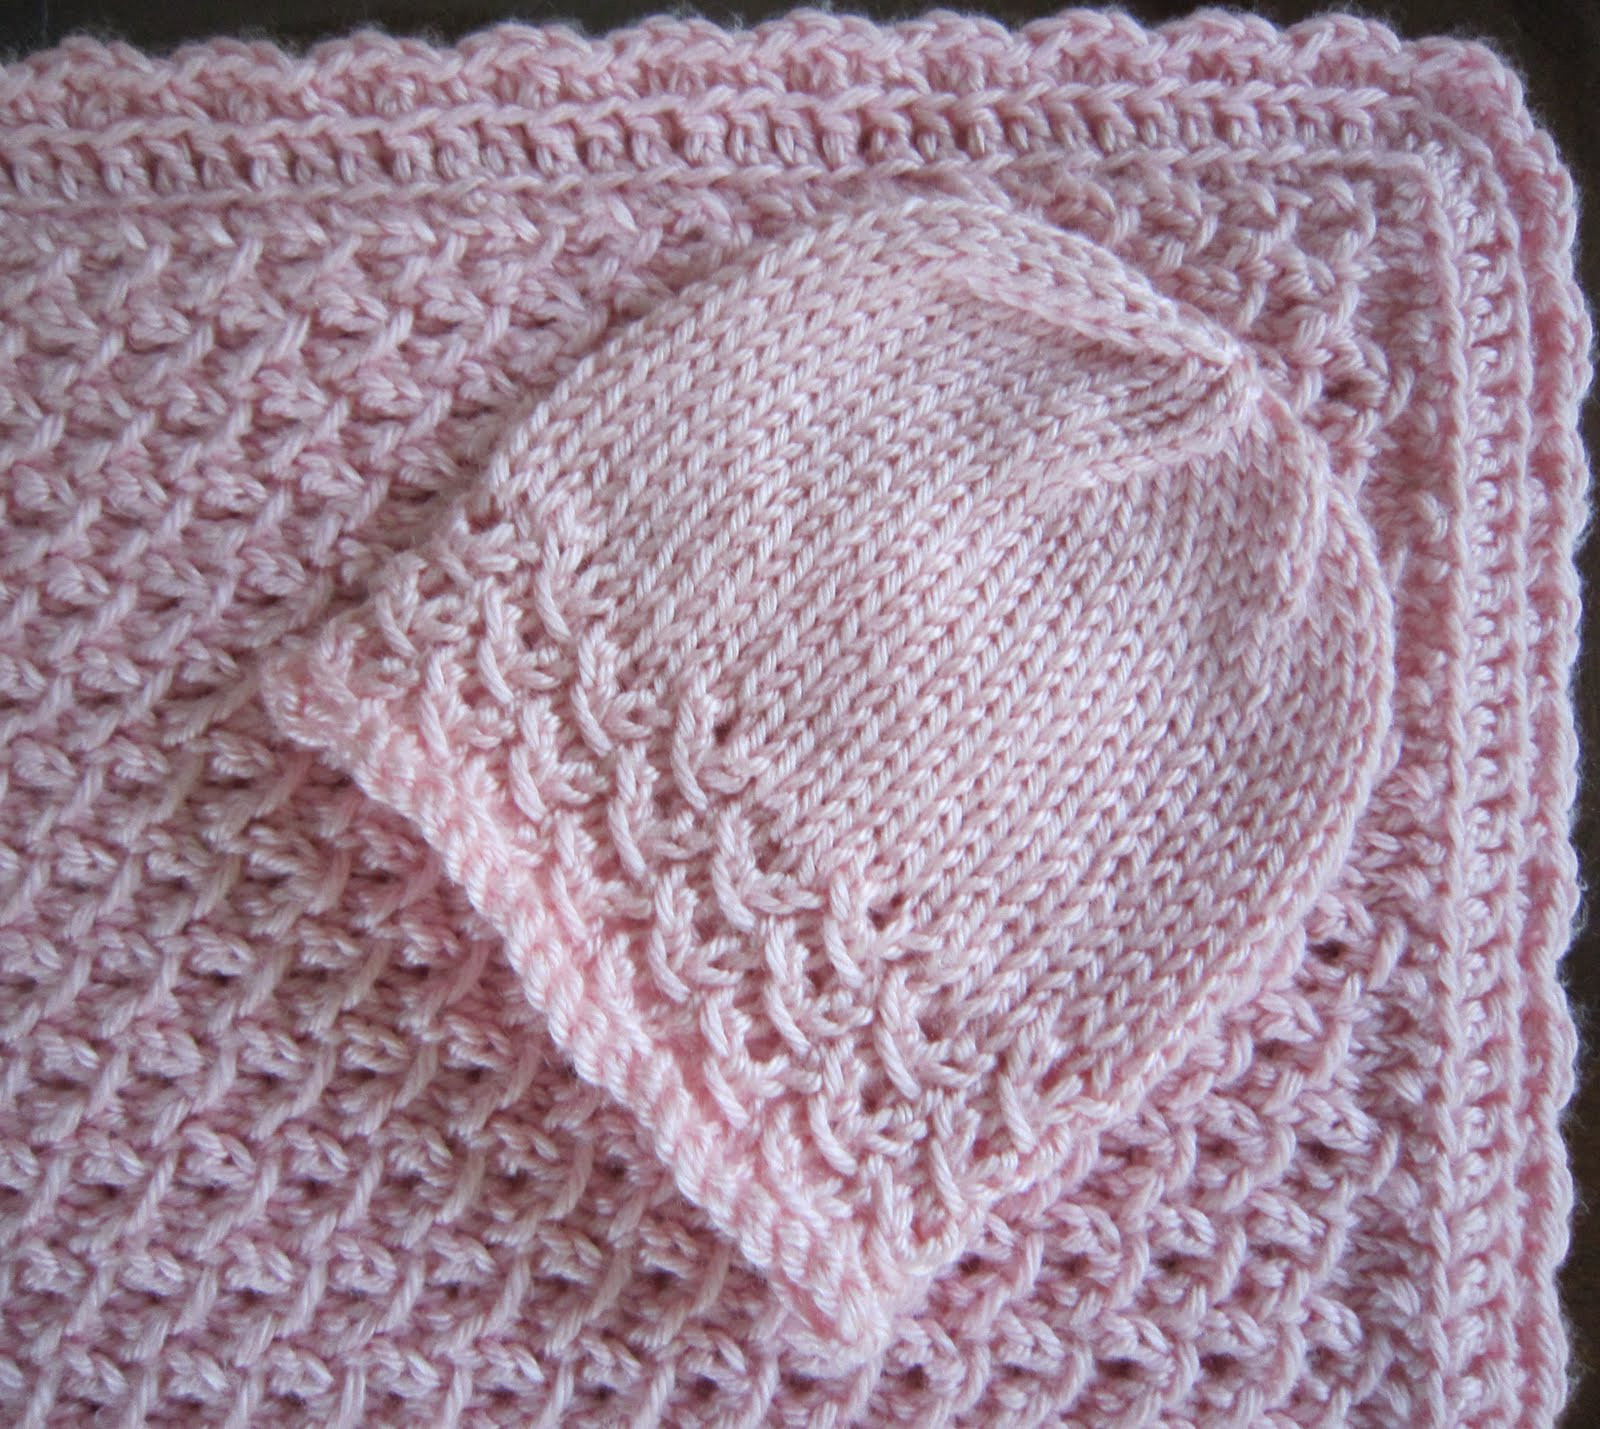 Crochet Stitches for Baby Blankets Fresh Free Baby Blanket Patterns to Crochet Of Amazing 45 Pics Crochet Stitches for Baby Blankets